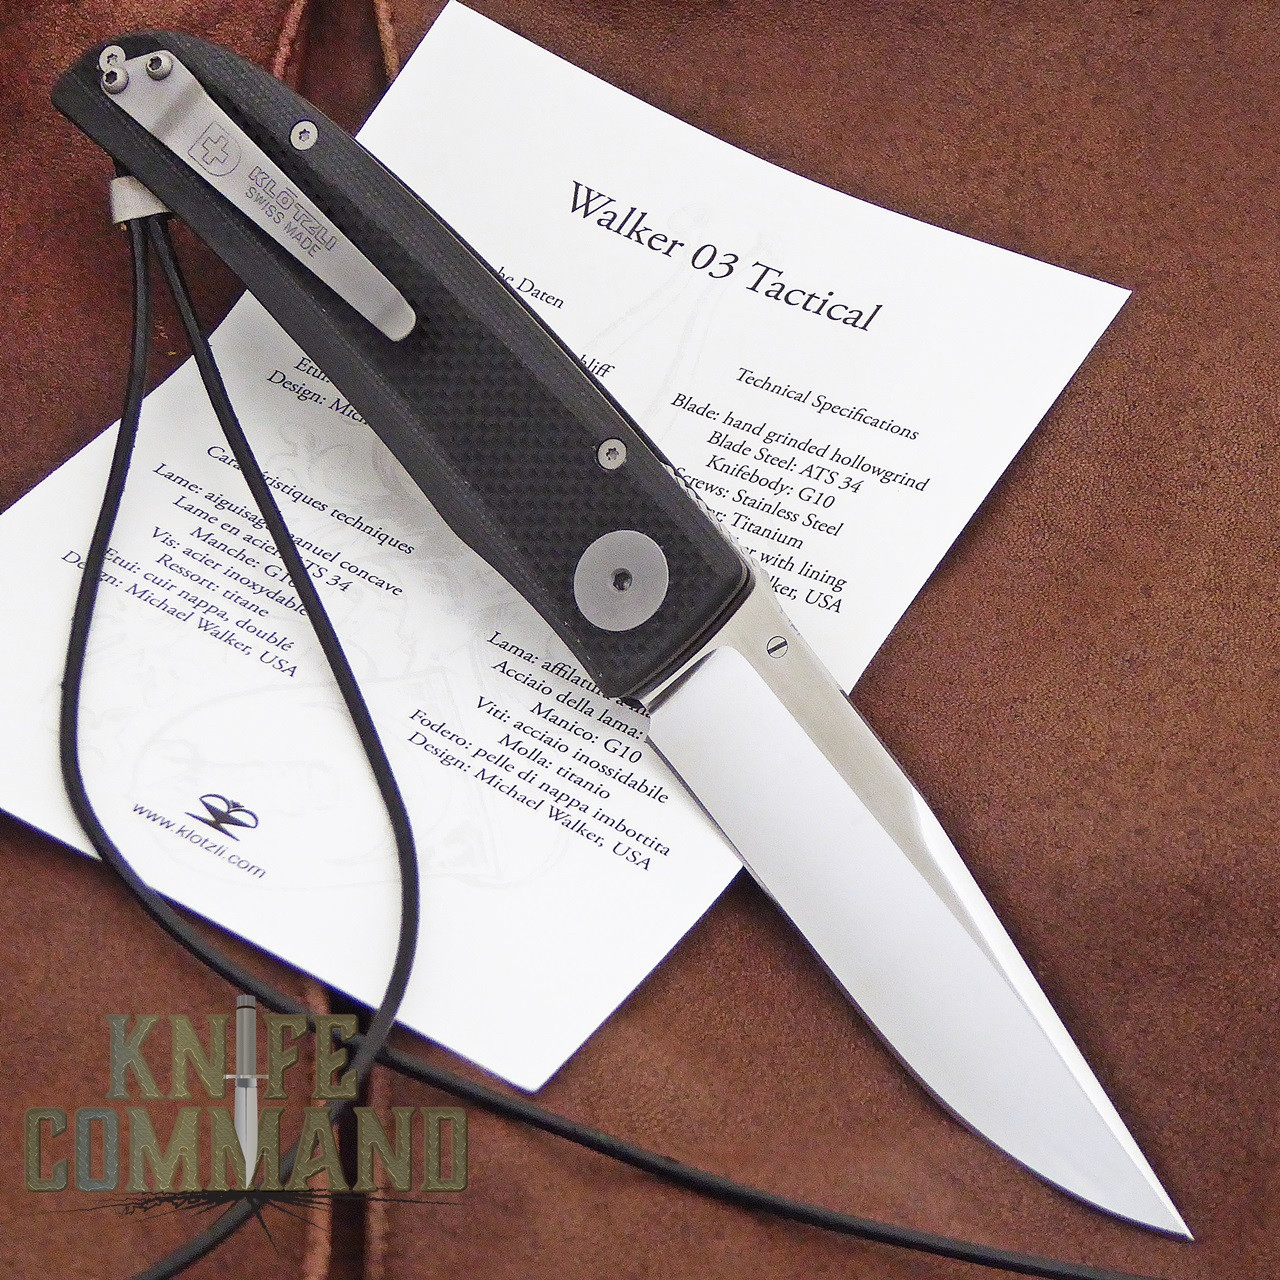 Klotzli Knives Michael Walker 03 Tactical Folding Knife Black WALK-03-TAC-C.  With pocket clip and papers.